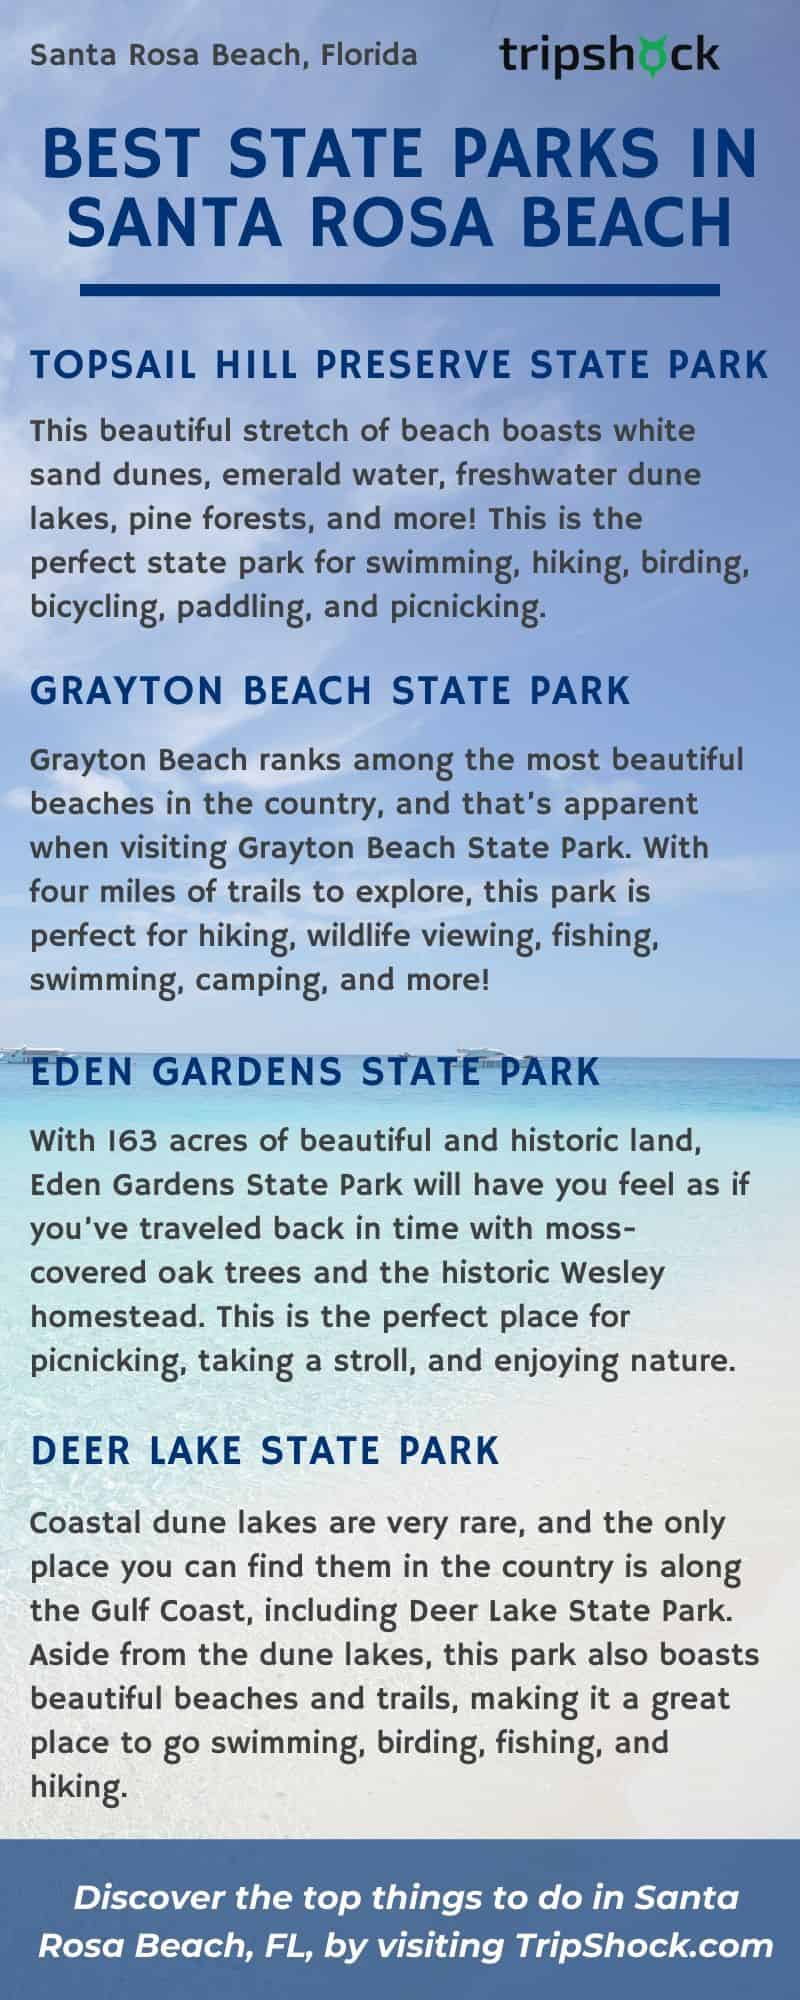 Best State Parks in Santa Rosa Beach